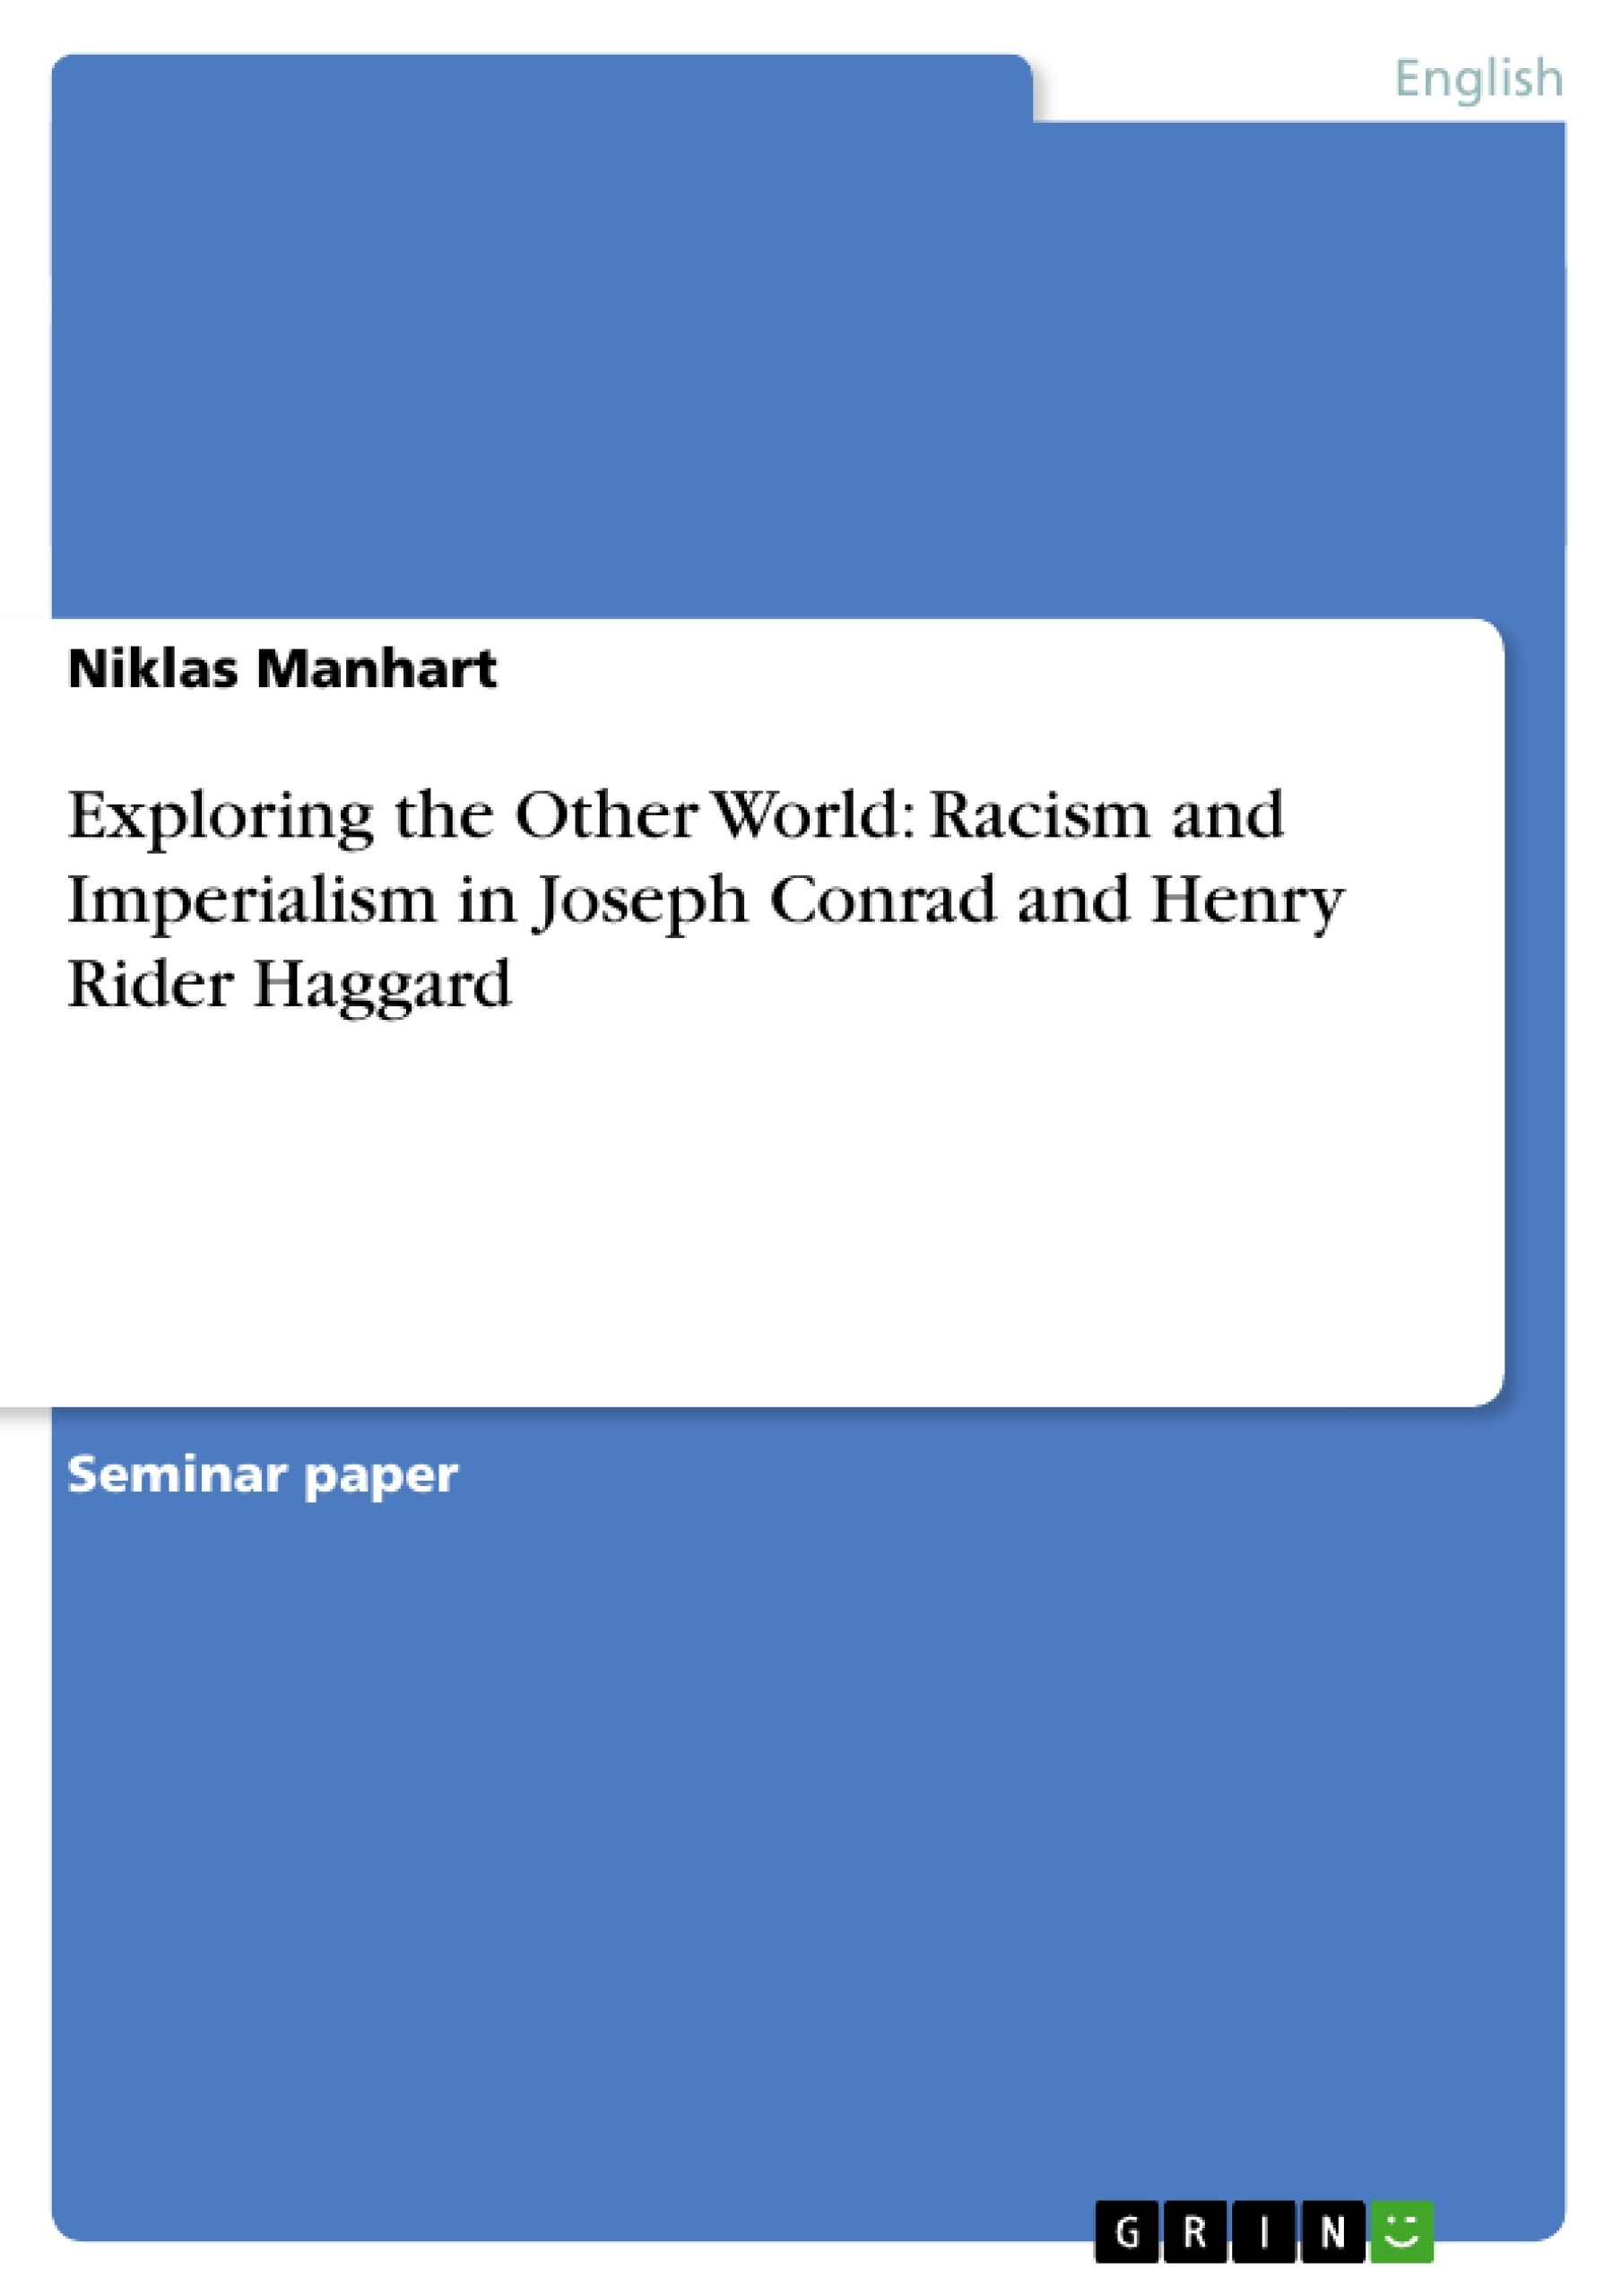 Title: Exploring the Other World: Racism and Imperialism in Joseph Conrad and Henry Rider Haggard